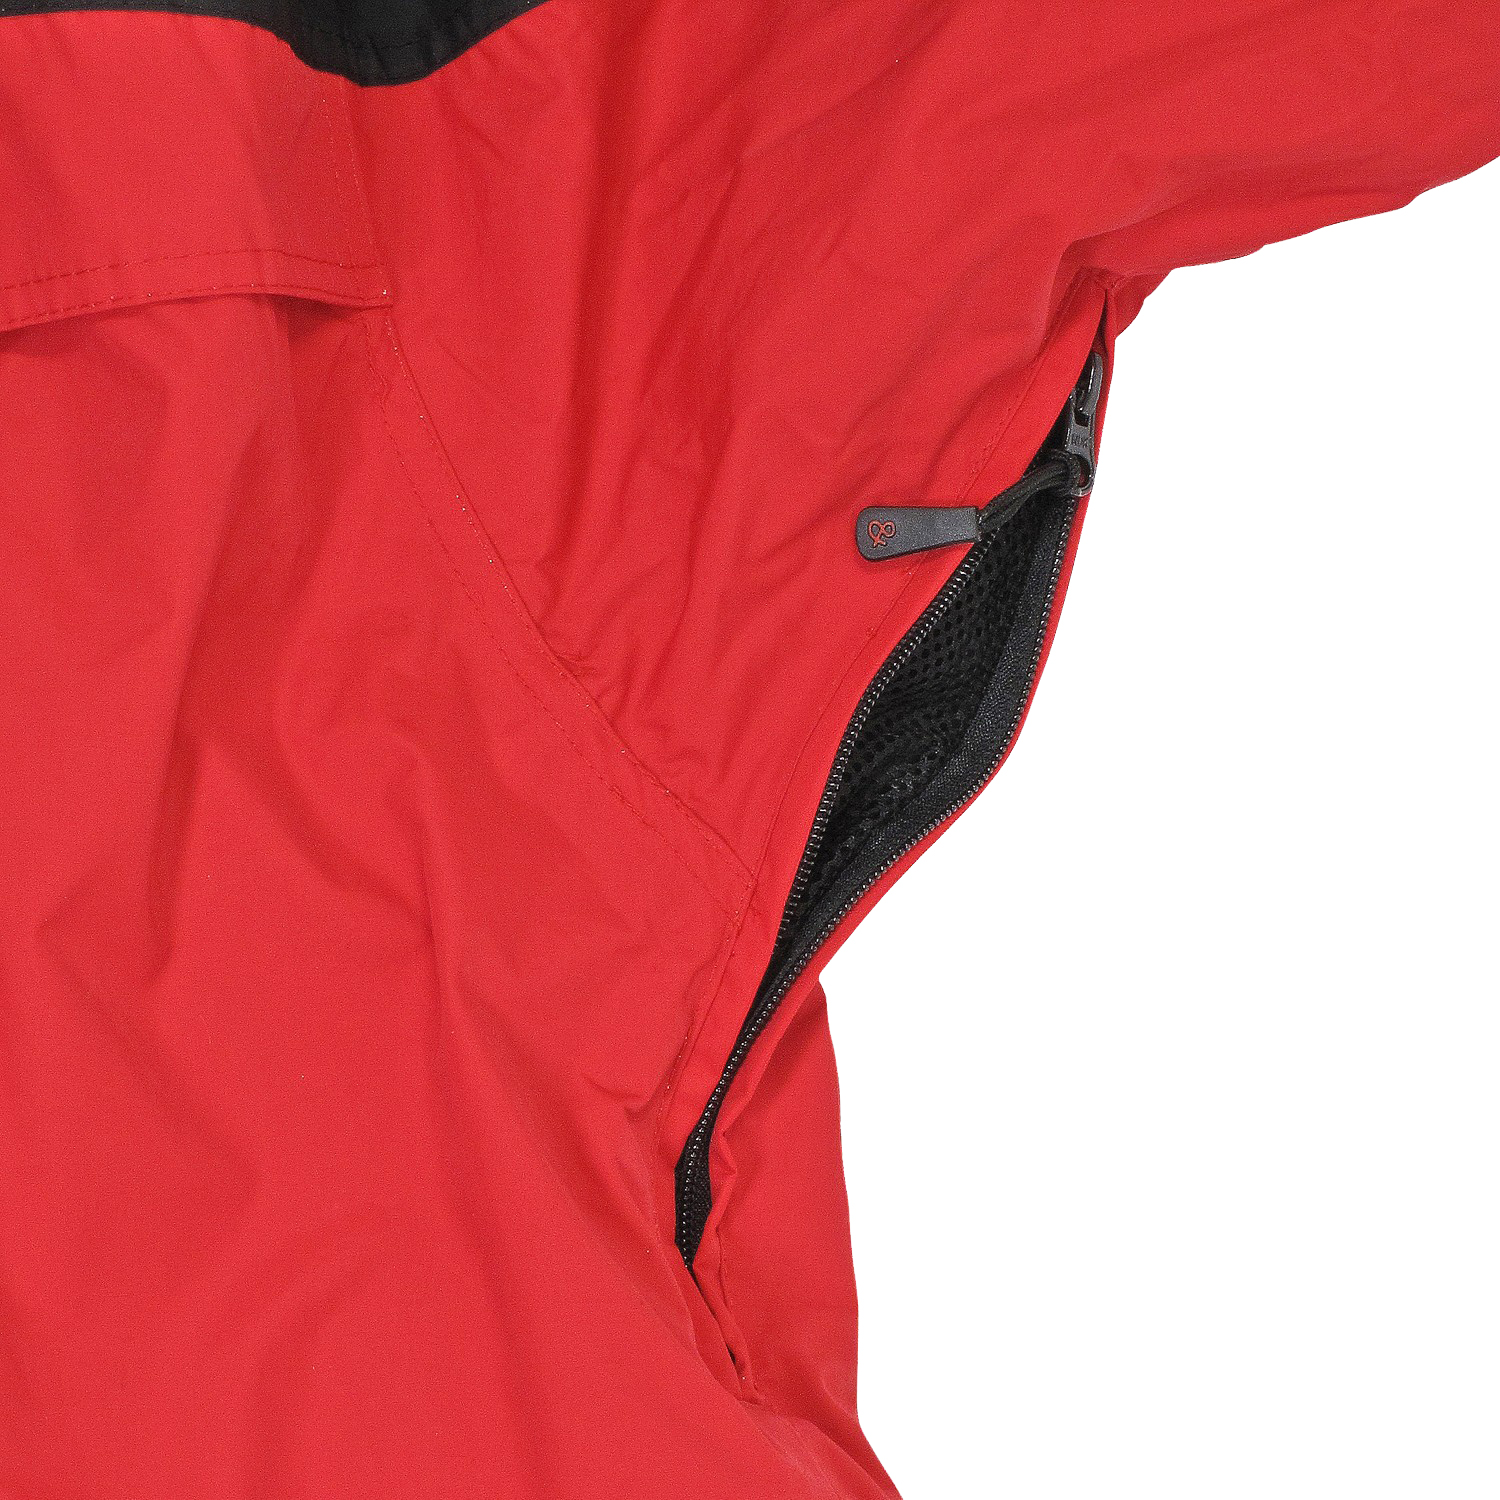 Detail Image to Red 3in1 jacket by marc&mark in oversizes up to 10XL